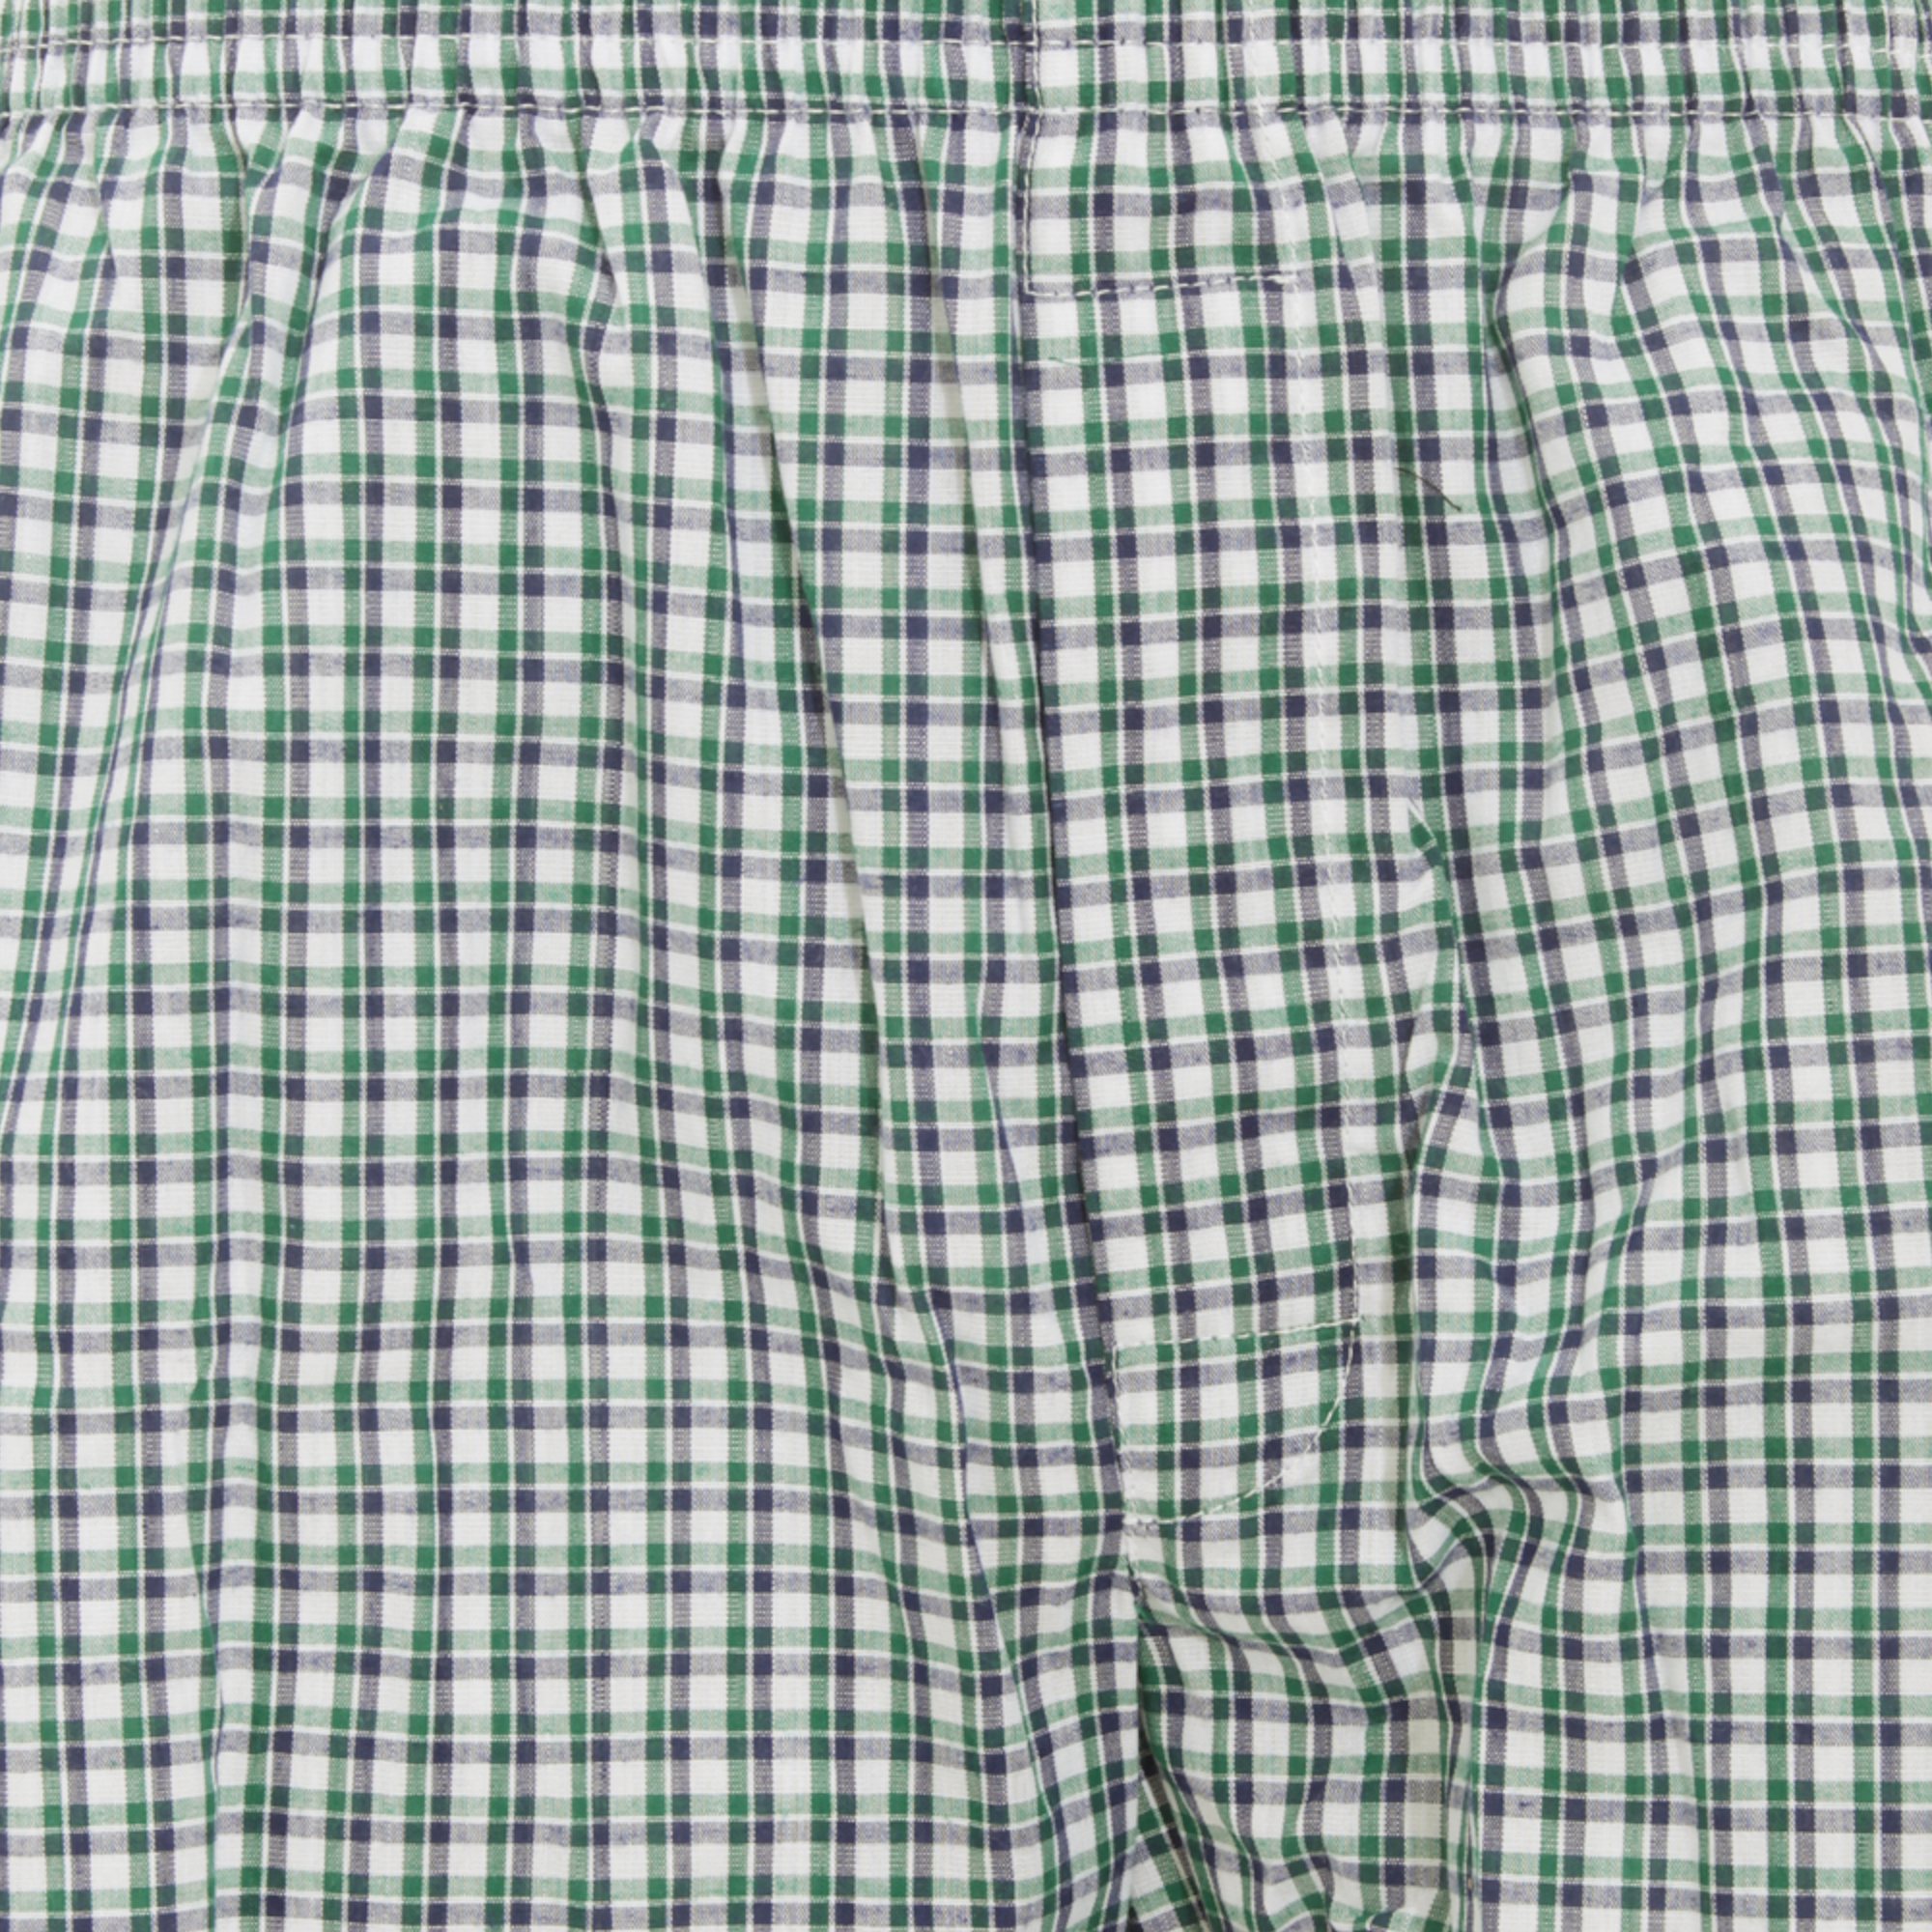 FLOSO-Mens-Cotton-Woven-Boxers-Pack-Of-2-MU168 thumbnail 3